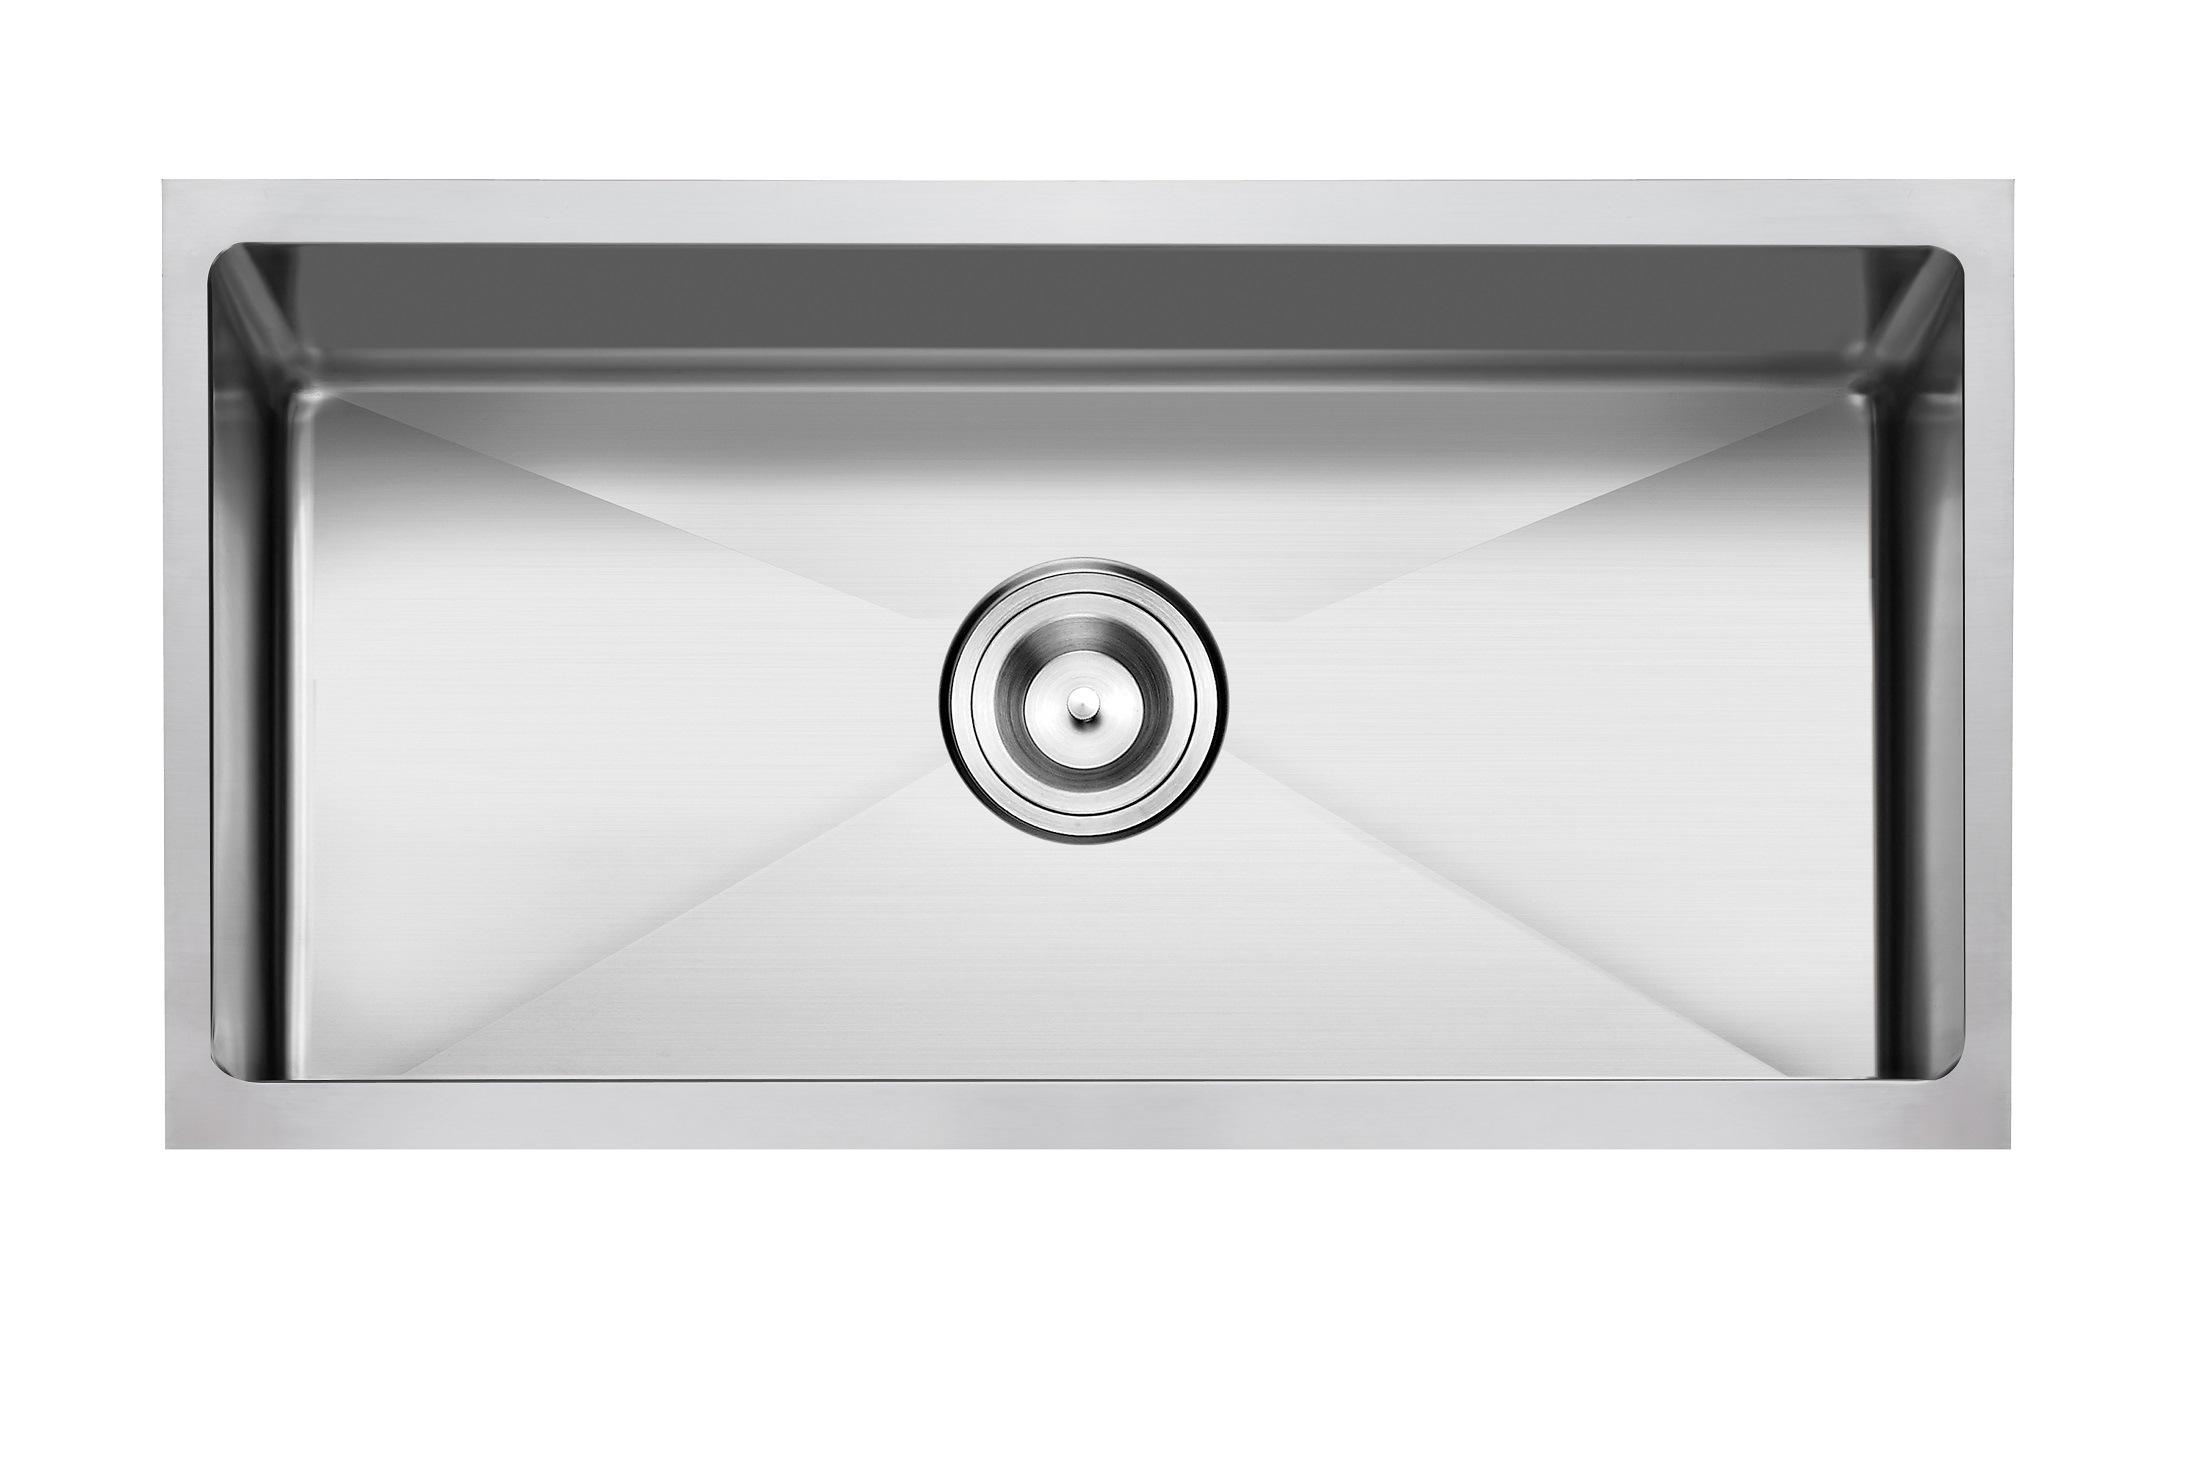 American Made Kitchen Sinks Stainless Steel Sink Foshan Sokal Sciencetech Limited Page 1